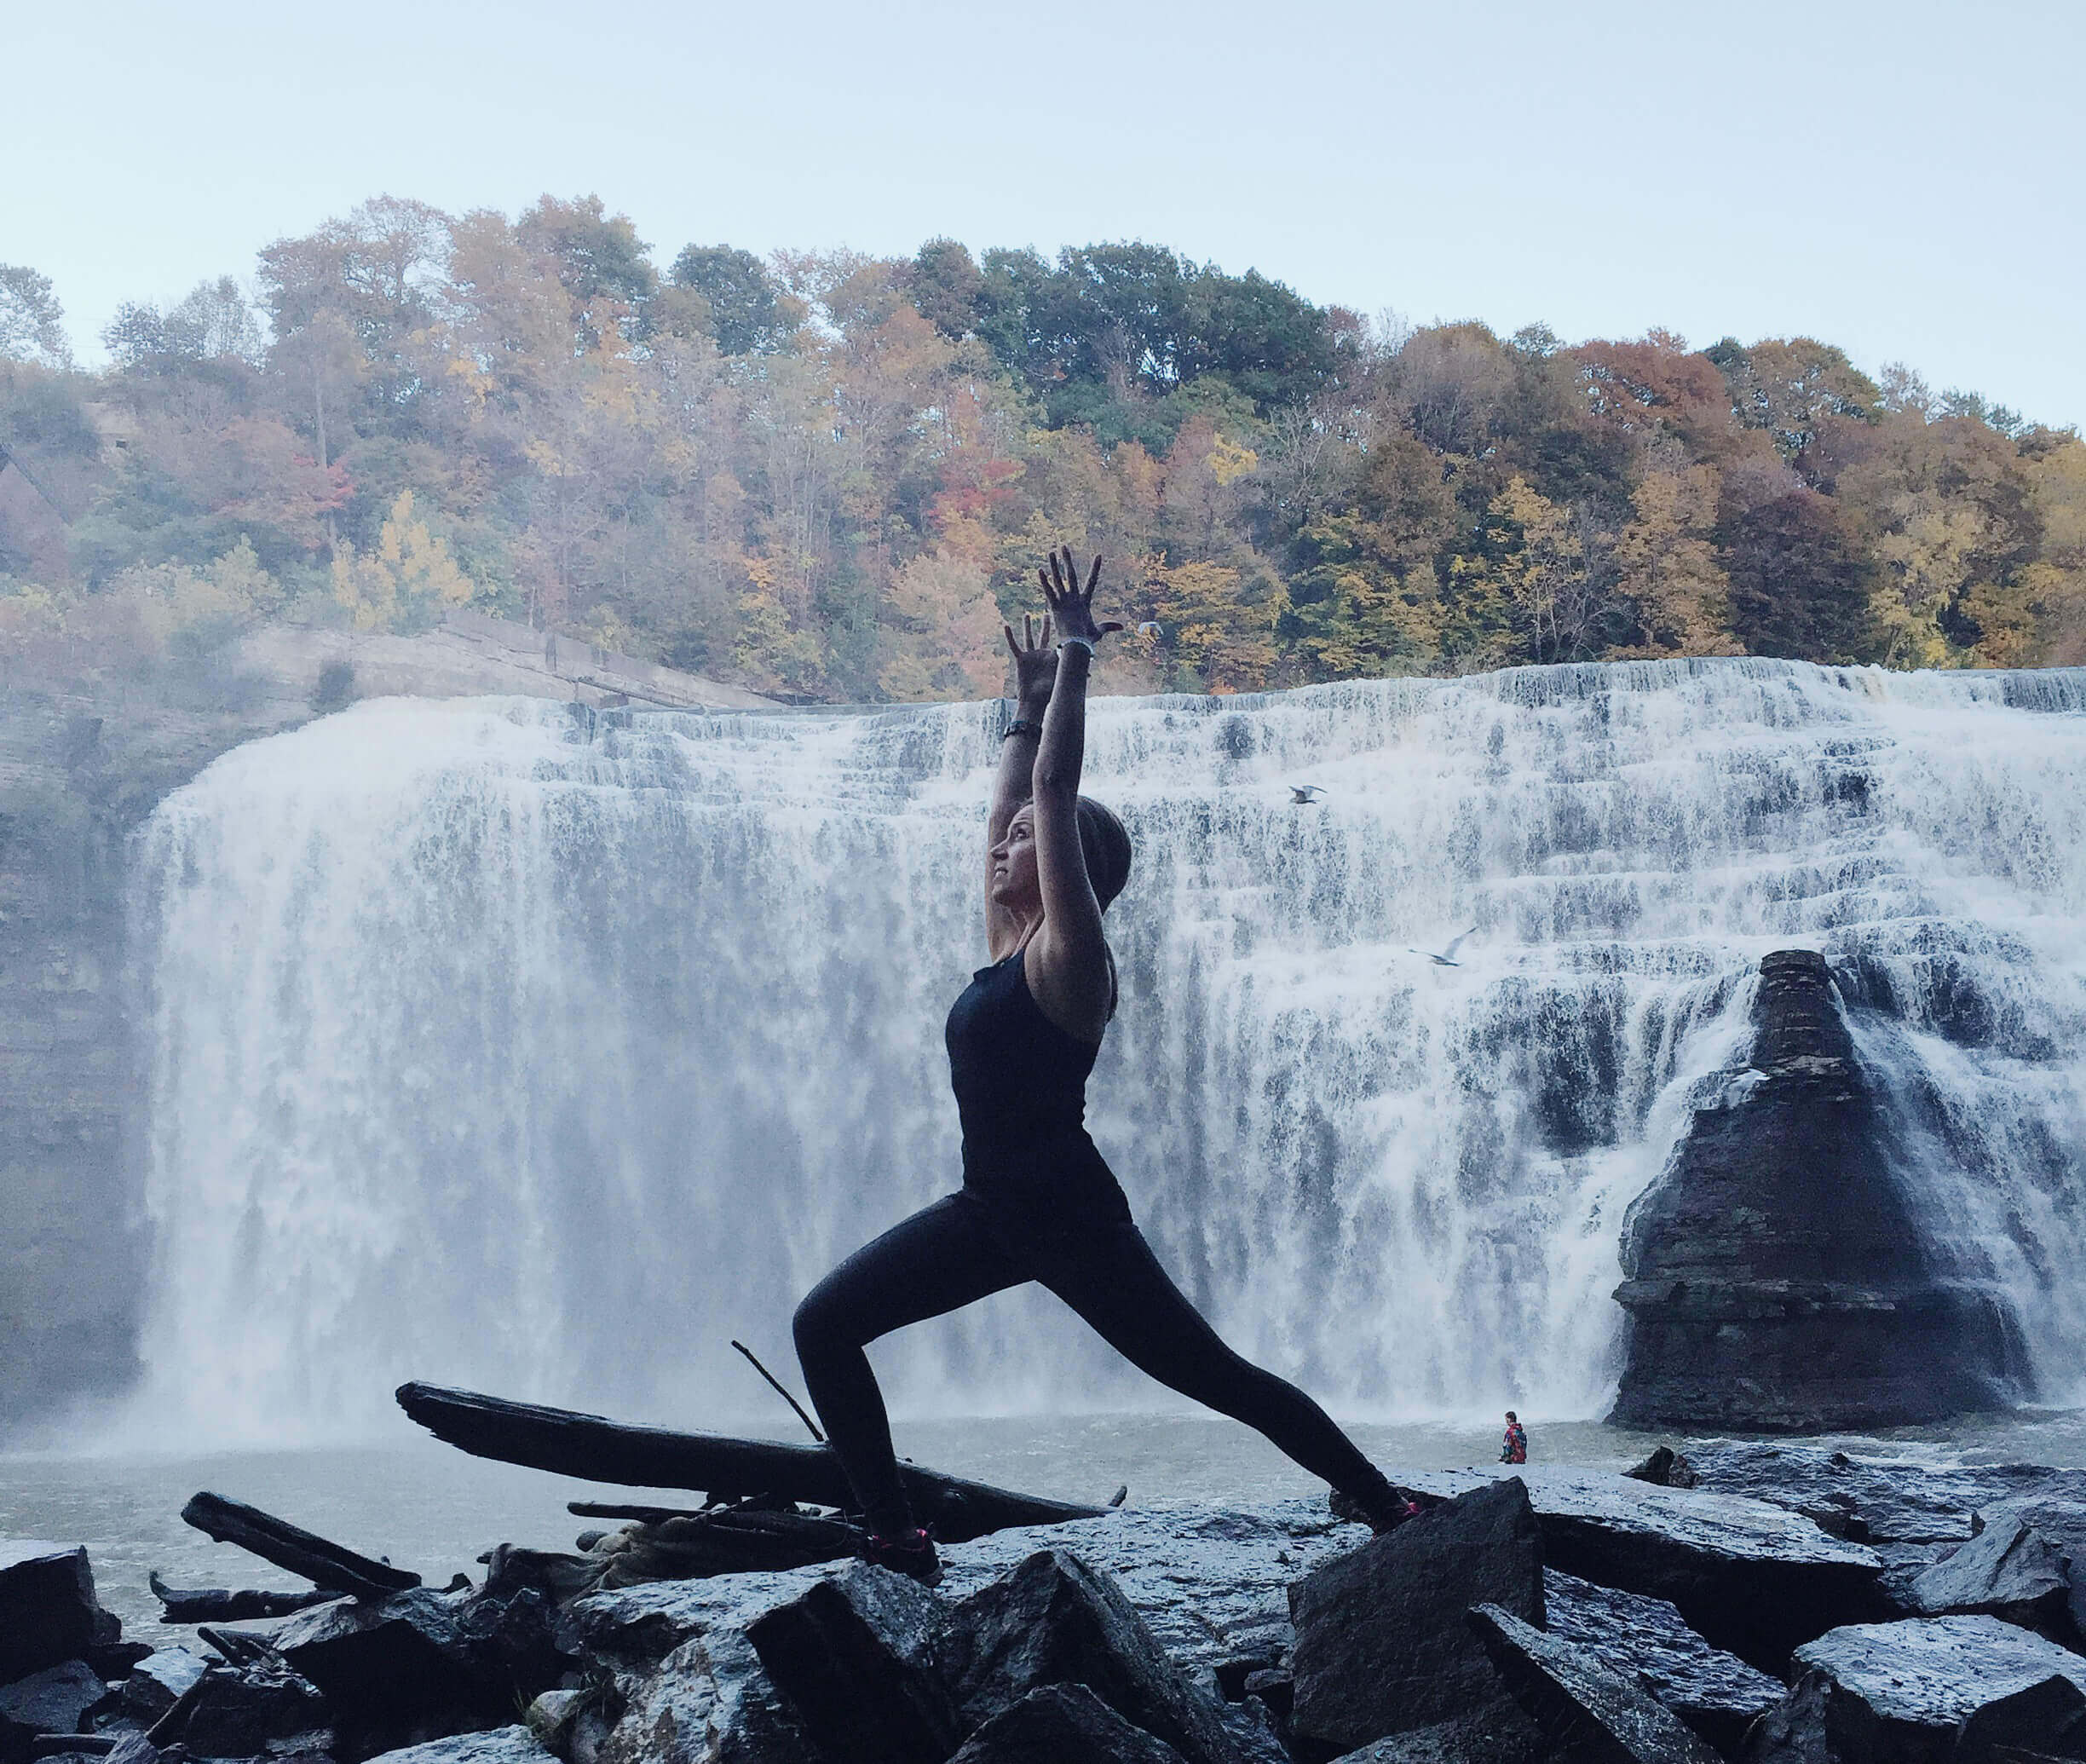 Yoga girl and adventurer Nicole Kazimer has the best memories during snowstorms.